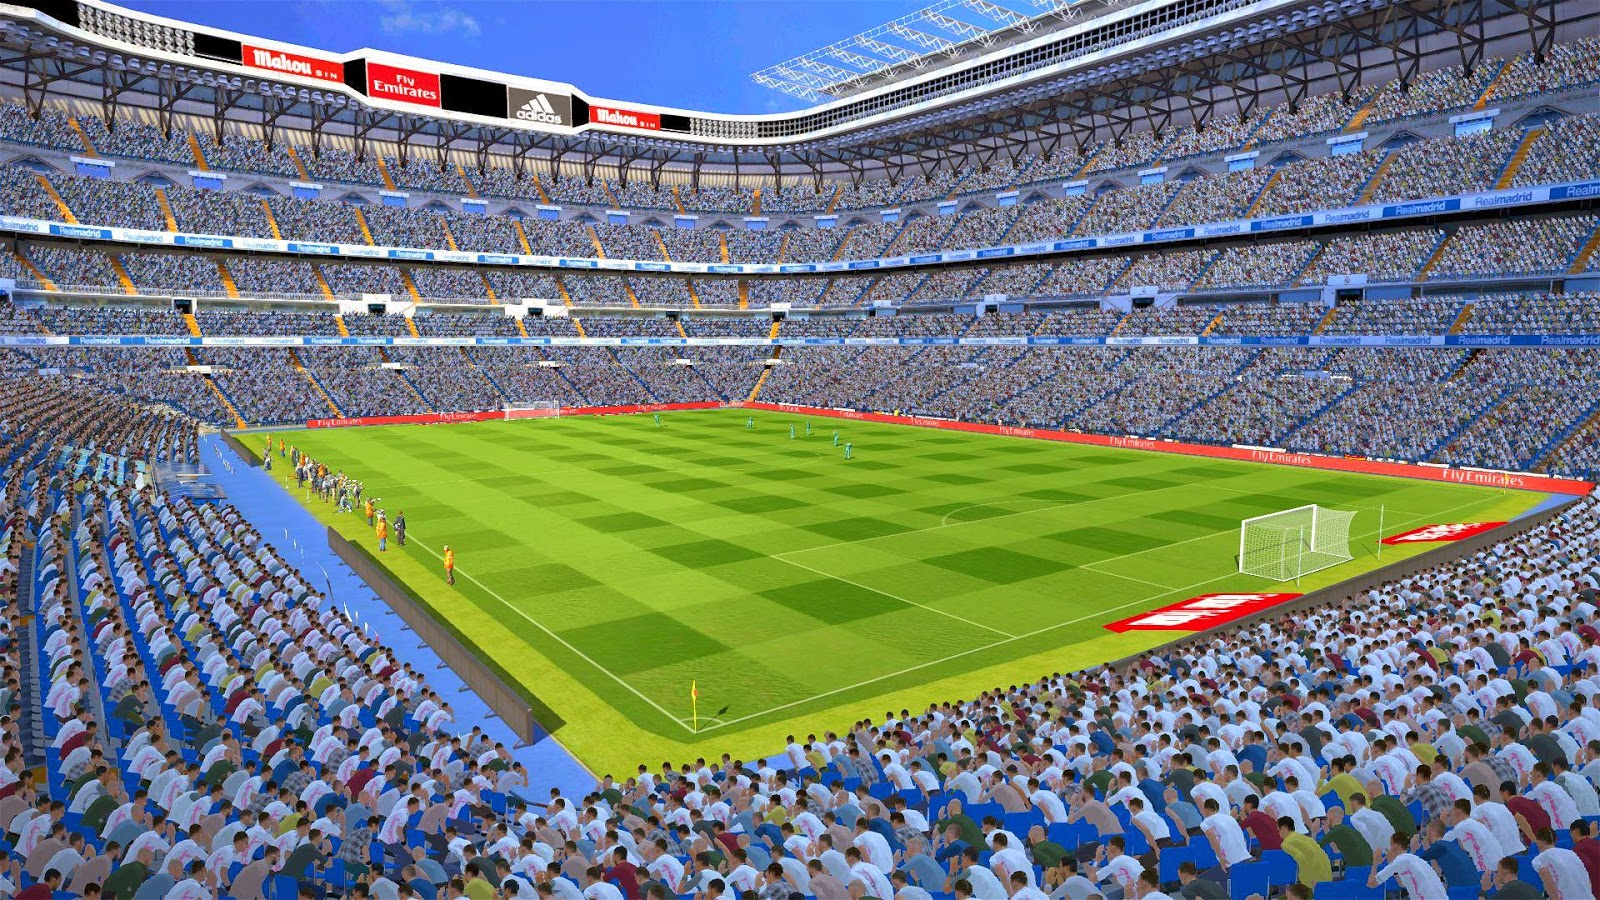 PES 2015: Estádio Santiago Bernabéu - Real Madrid HD 10830986_721144731303869_3682677385083291161_o